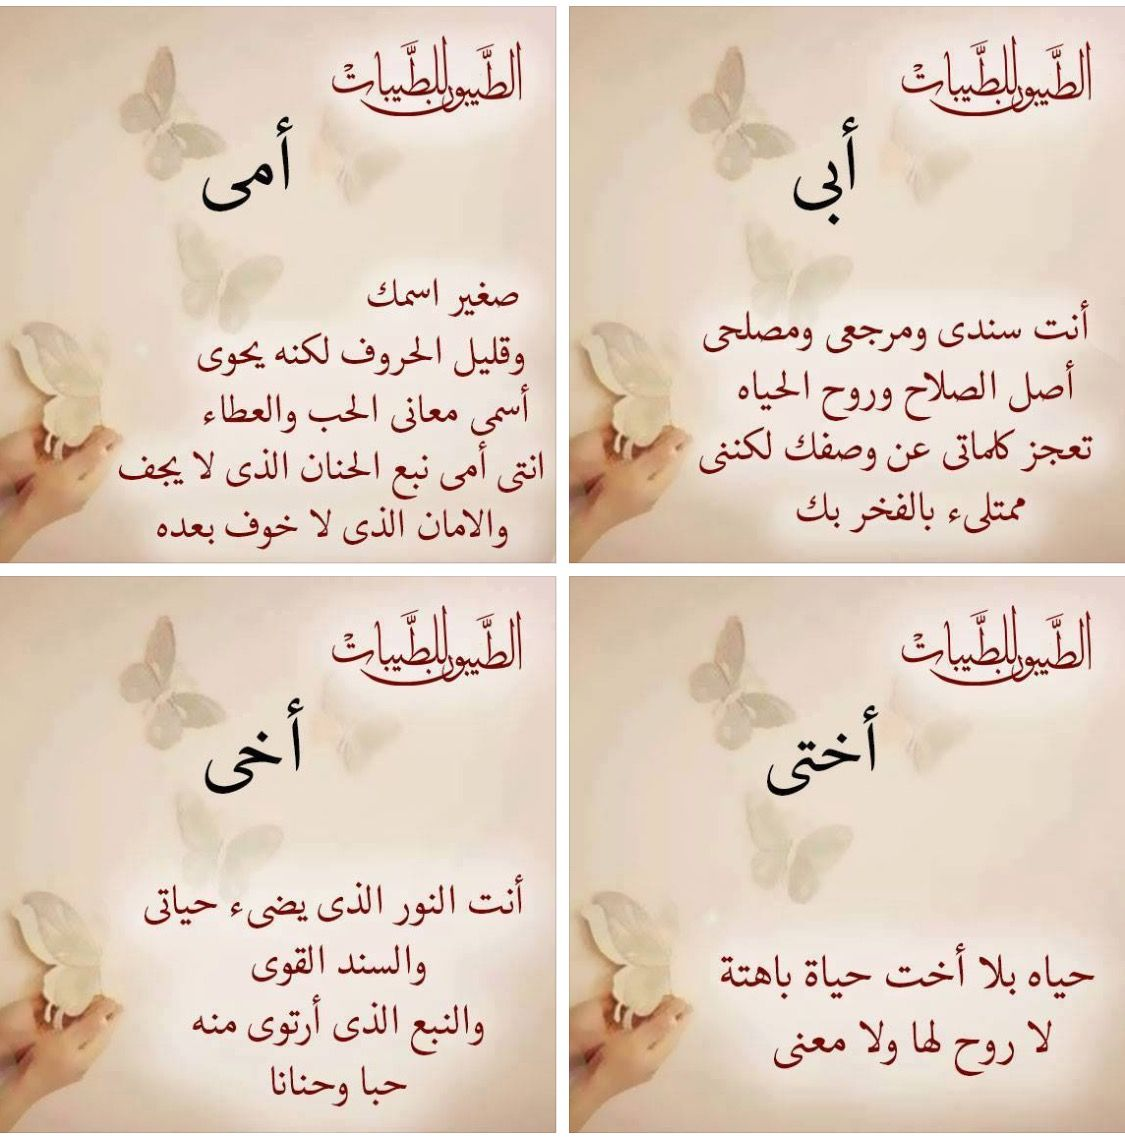 Desertrose أبي وأمي أخي وأختي Good Day Quotes Mom And Dad Quotes Dad Quotes